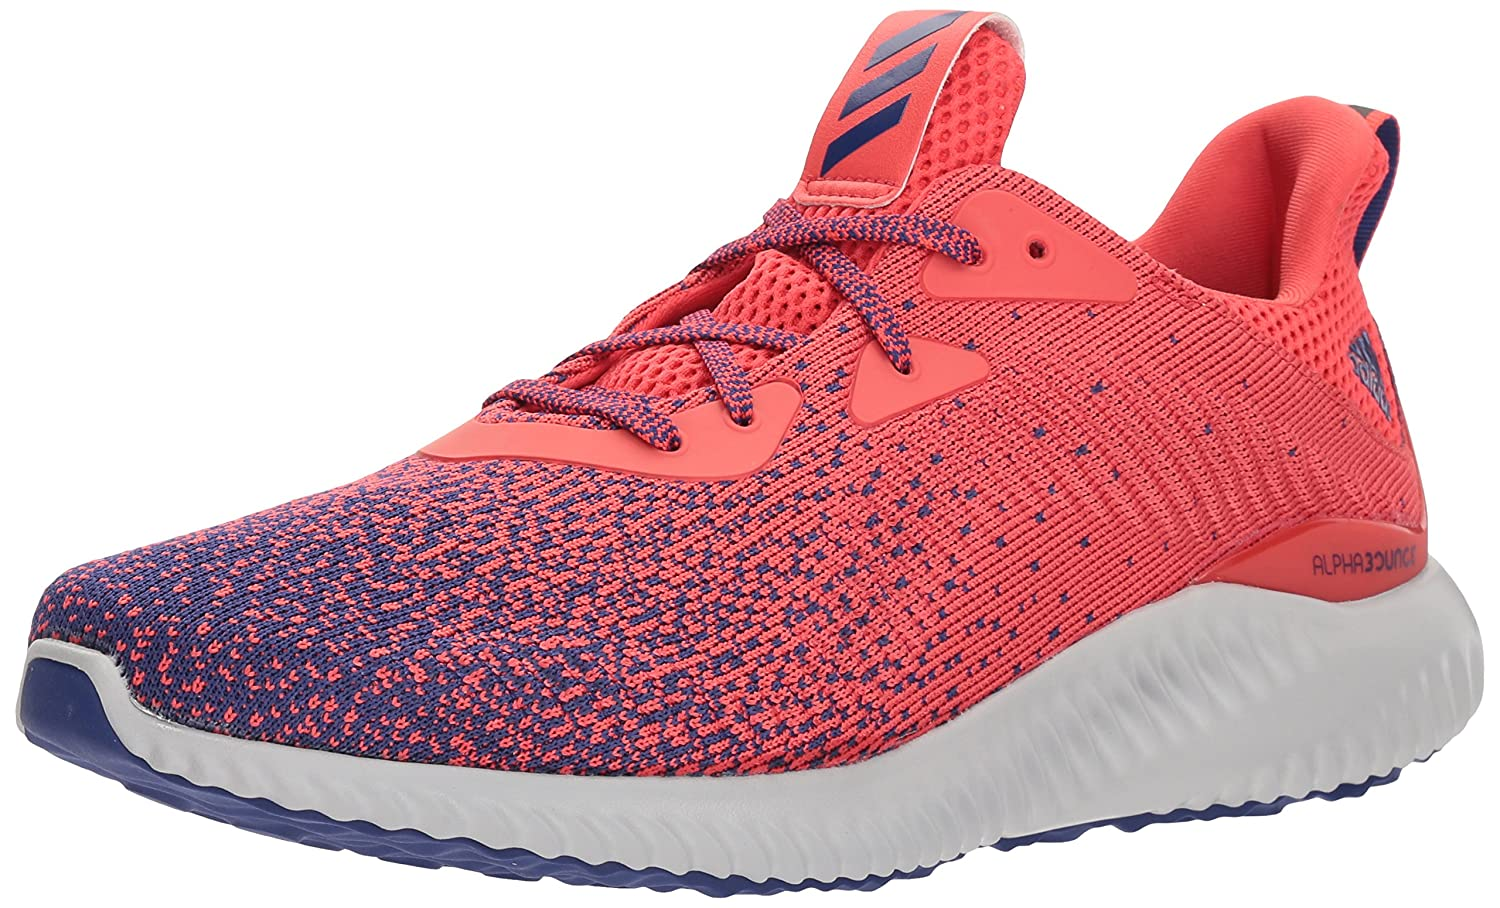 adidas Men's Alphabounce Ck M Running Shoe B071S6L8ZV 10 D(M) US|Real Purple/Real Purple/Real Coral